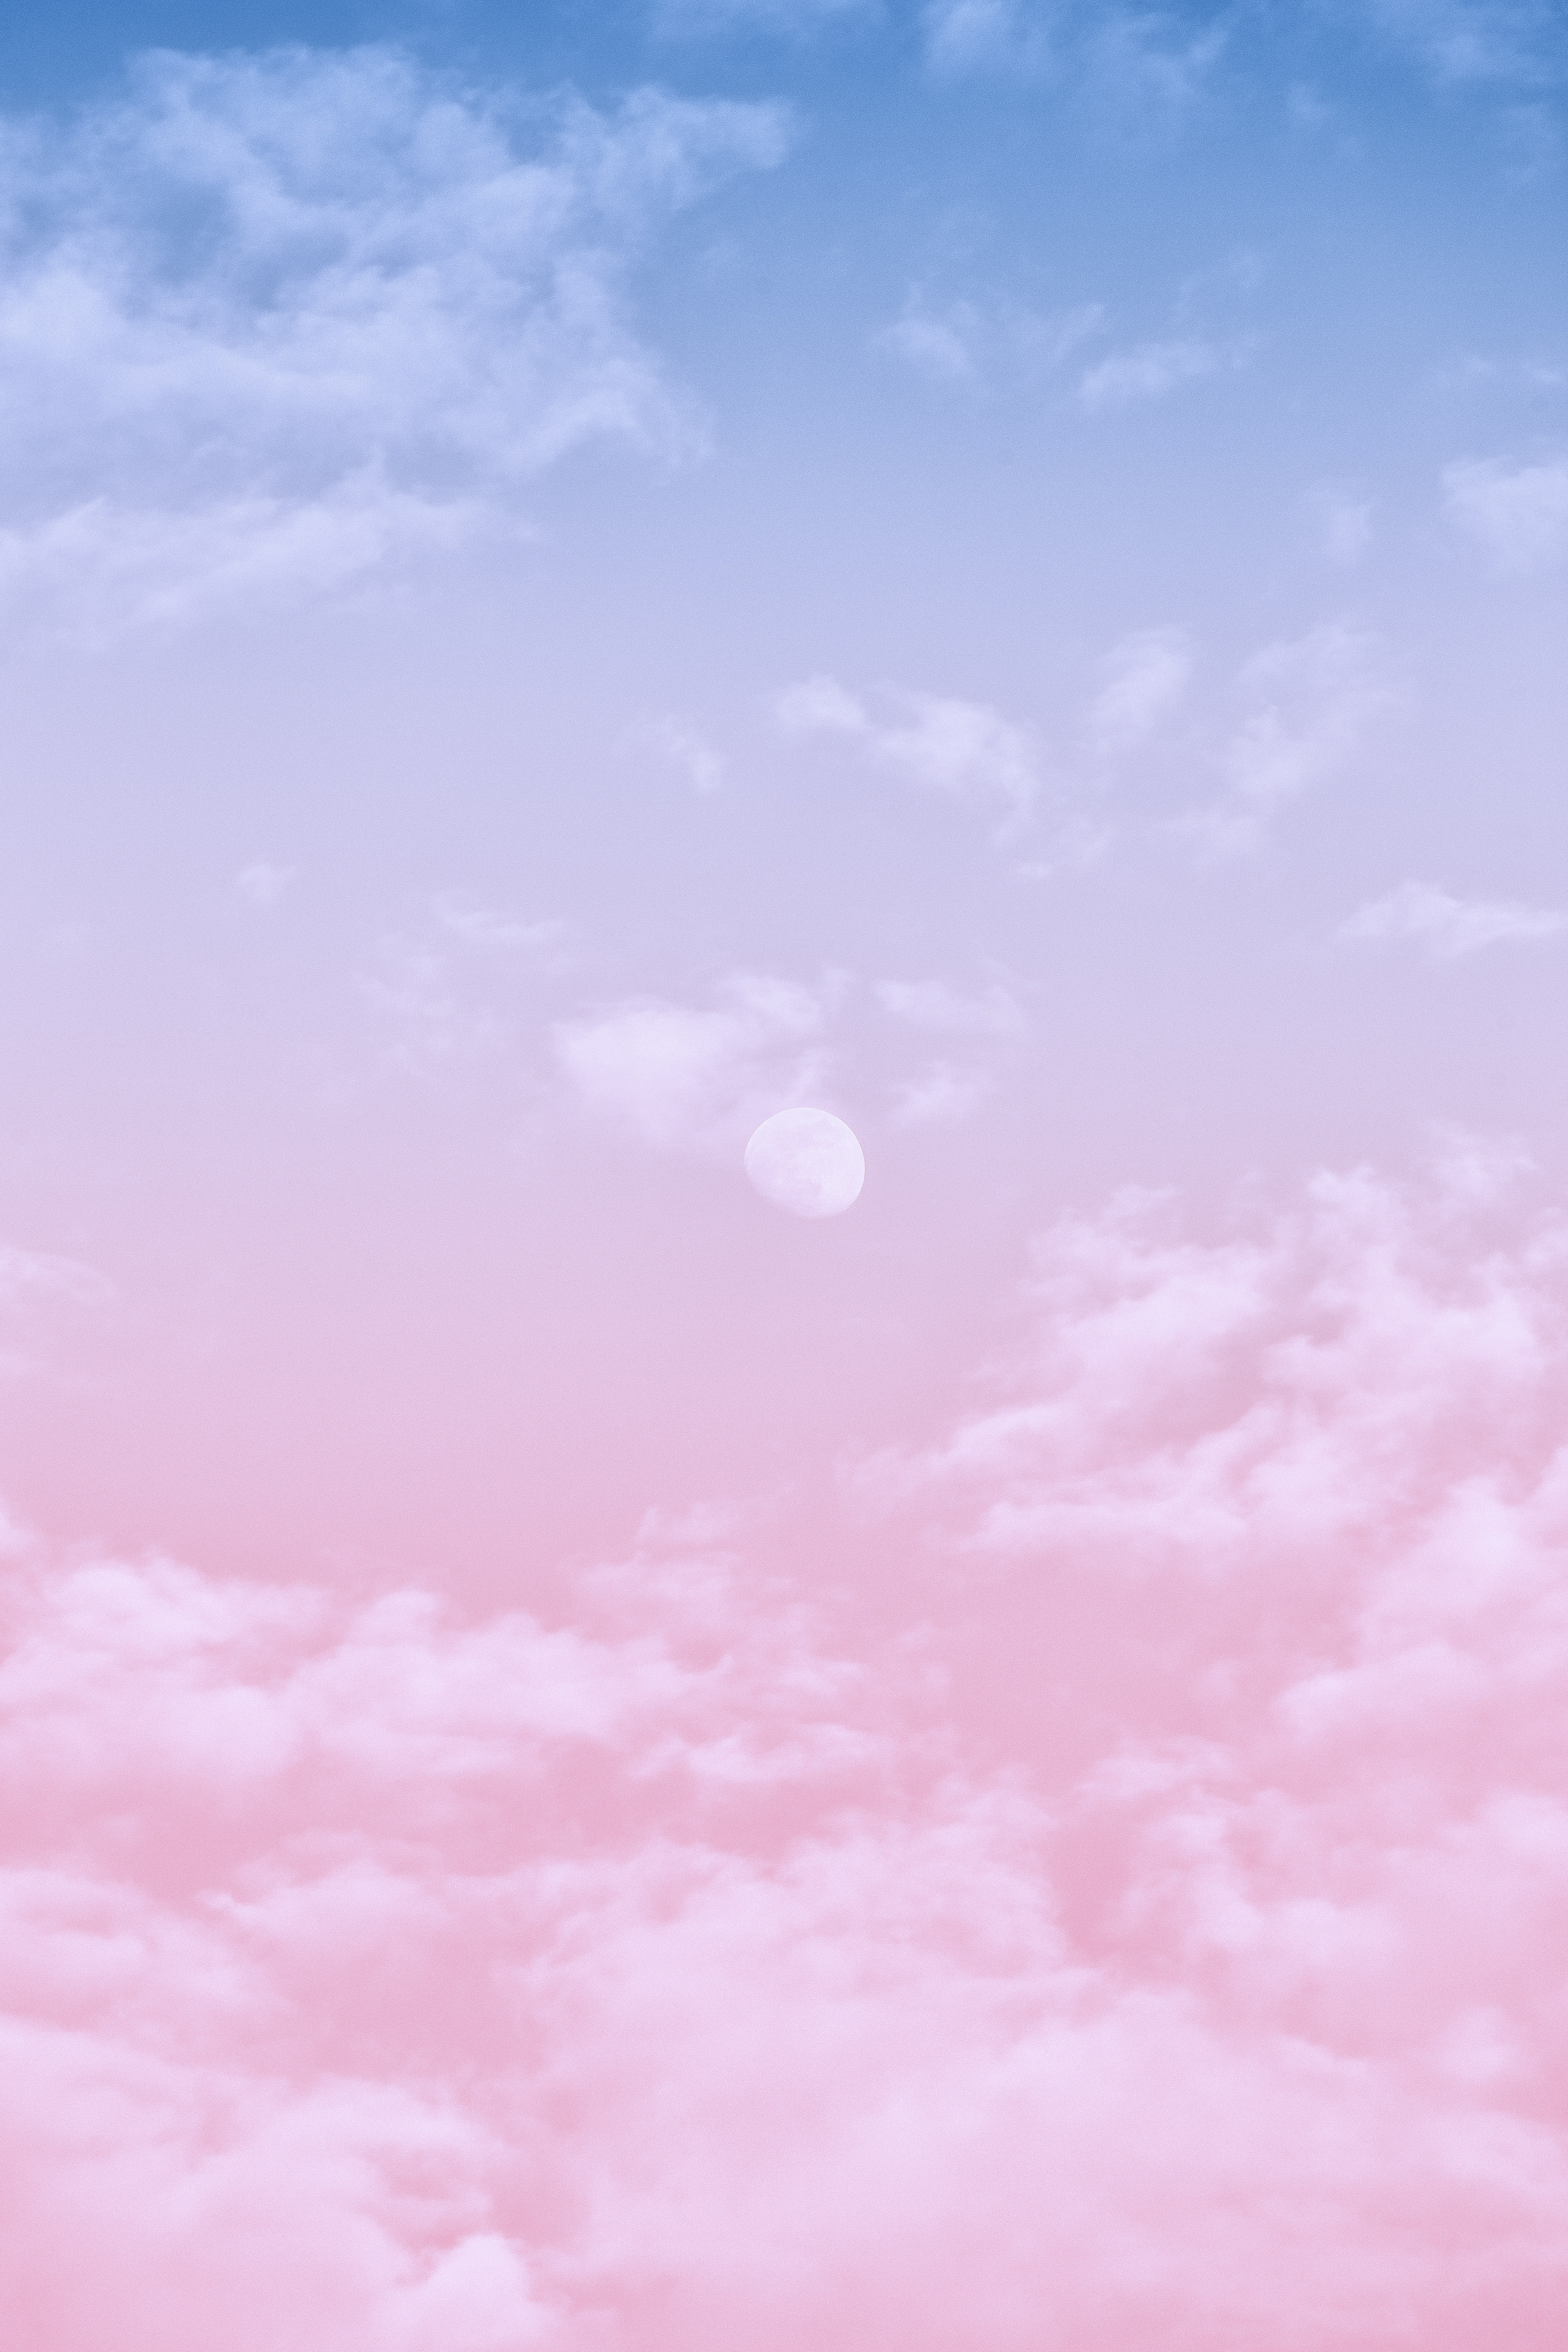 White Clouds in Pink and Blue Clouds · Free Stock Photo